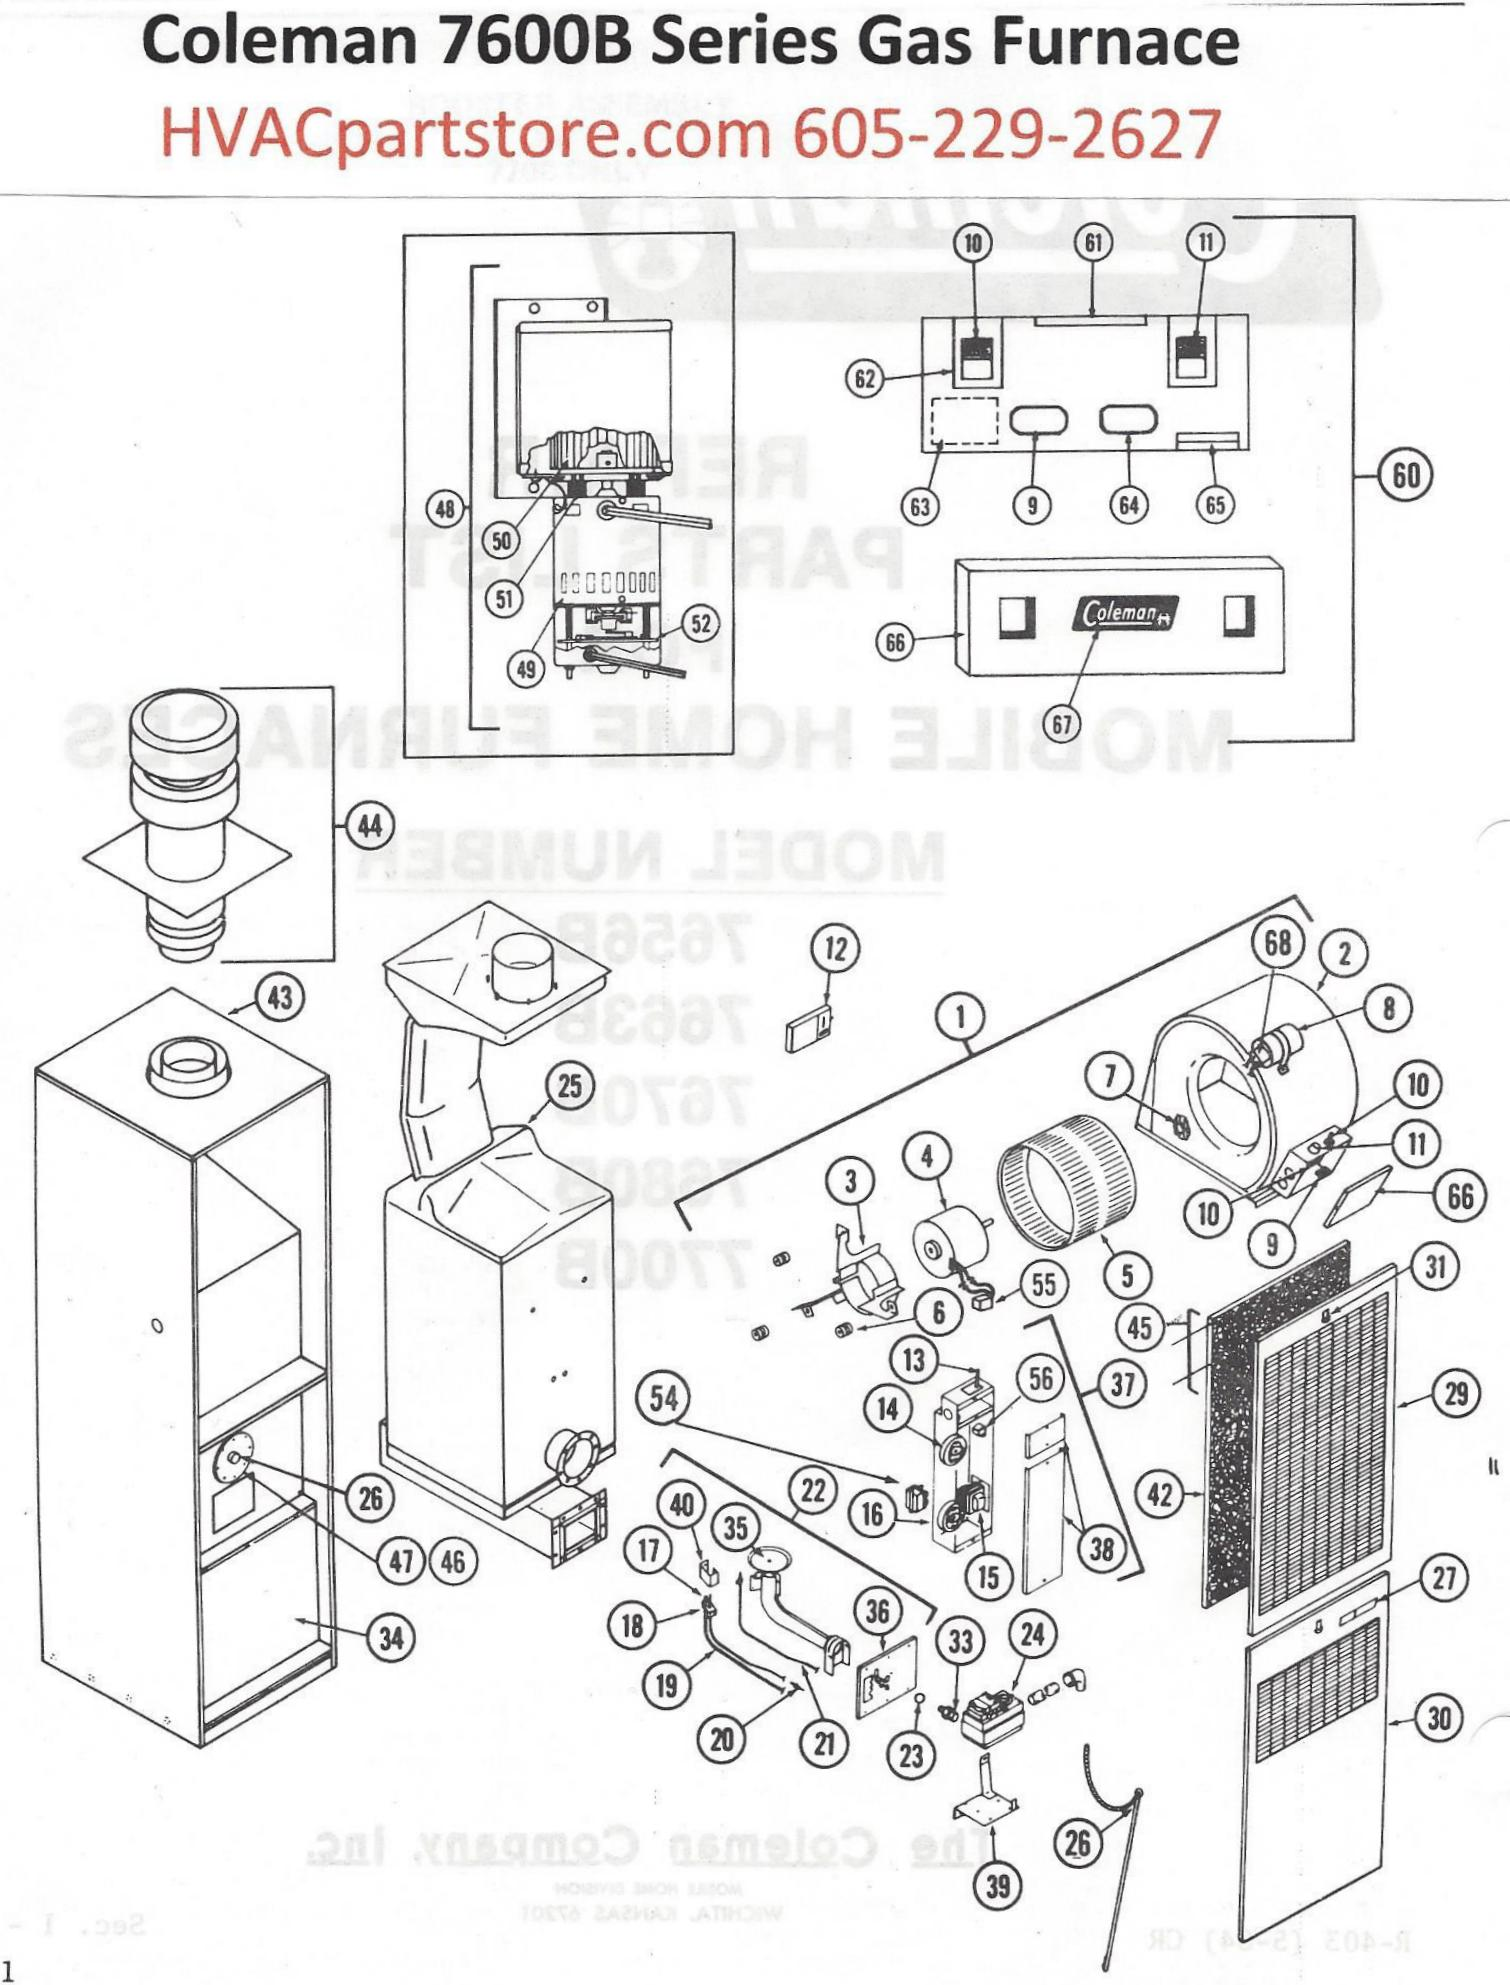 coleman gas furnace wiring diagram wiring diagram todays7680b856 coleman gas furnace parts hvacpartstore miller furnace wiring diagram 7680b856 coleman gas furnace parts